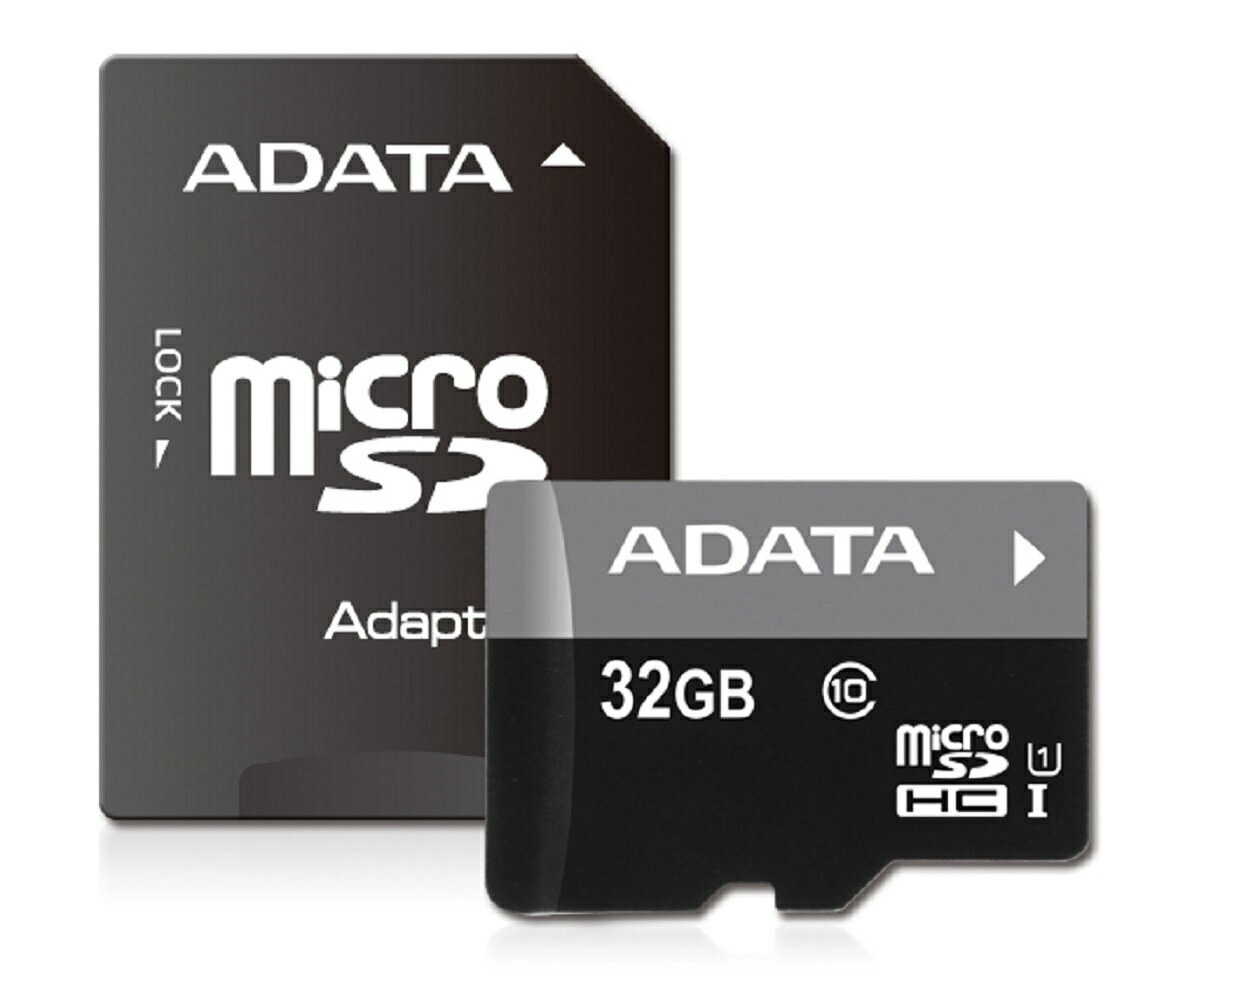 ADATA Premier microSDHC UHS-I Class 10 Card 32GB with Adapter (AUSDH32GUICL10-RA1) 0